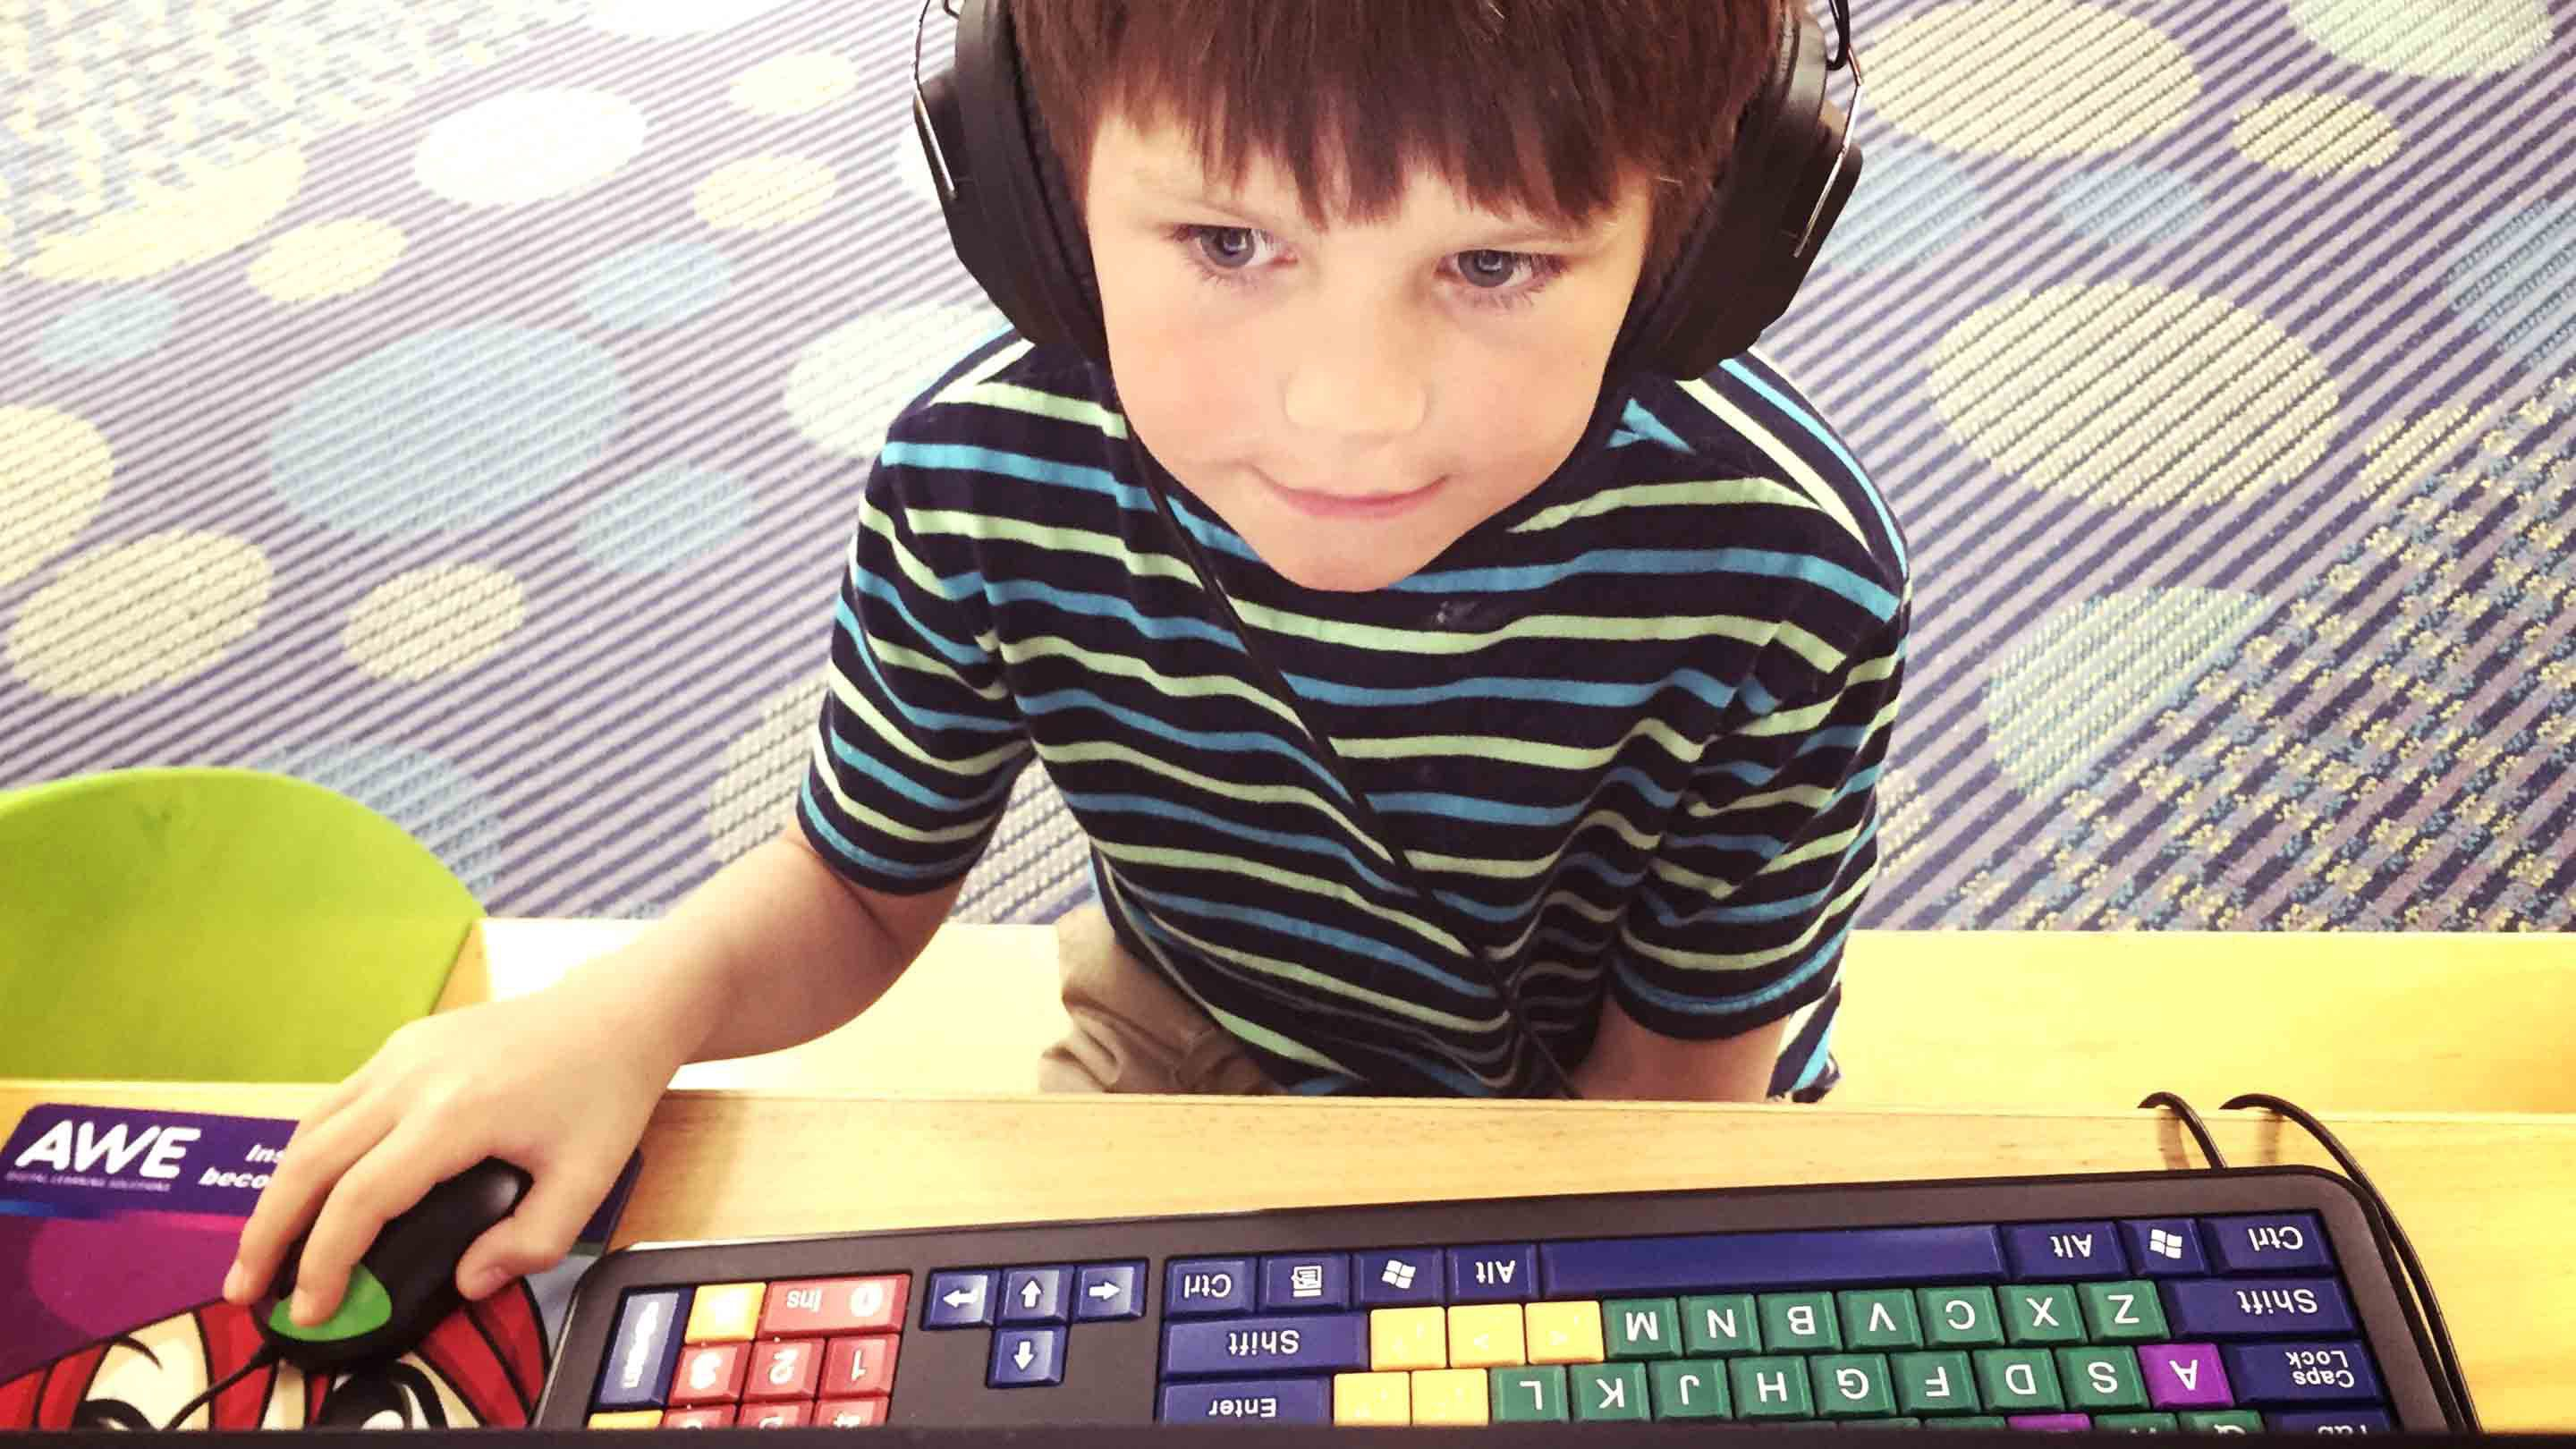 A boy wearing headphones works at a computer.